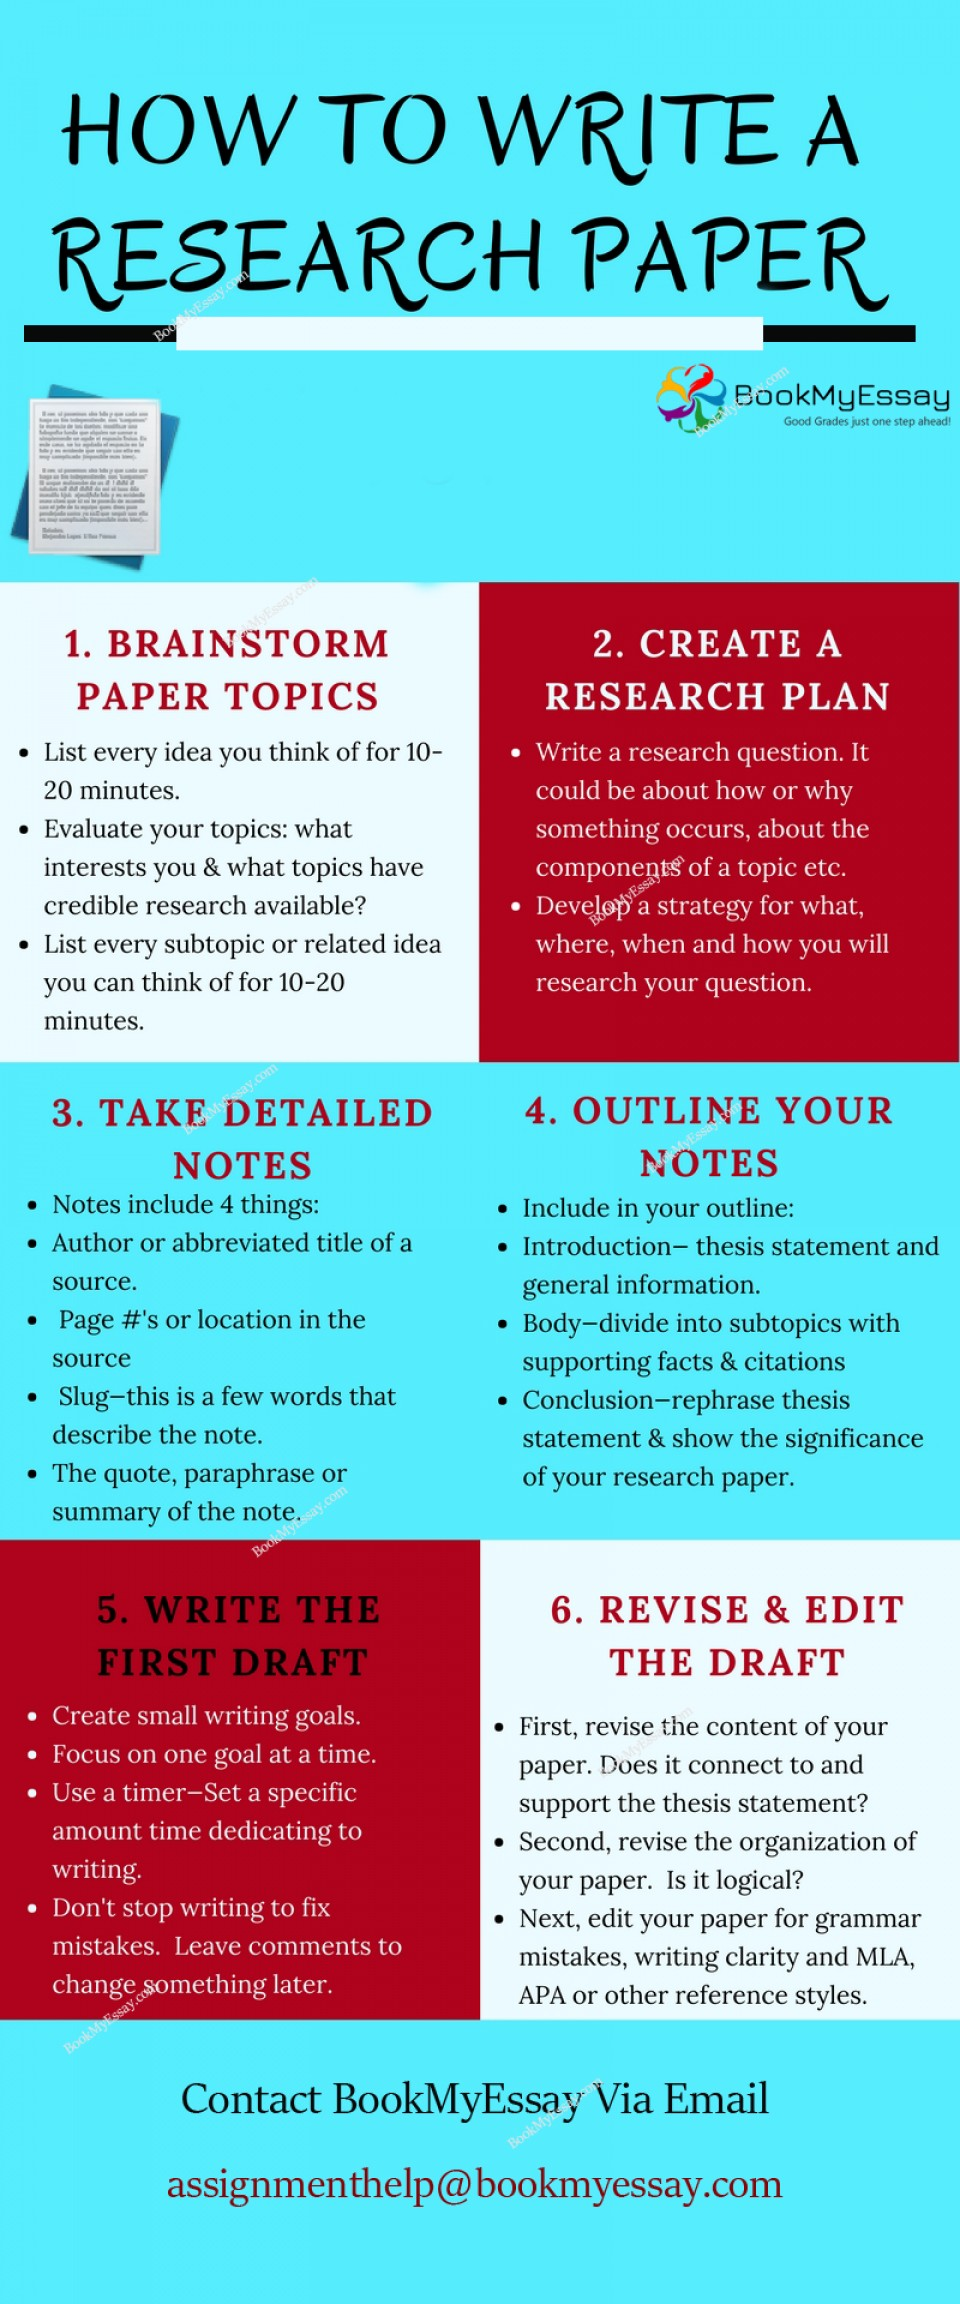 003 Research Paper Writing Service Dreaded Services In India Online Chennai 960